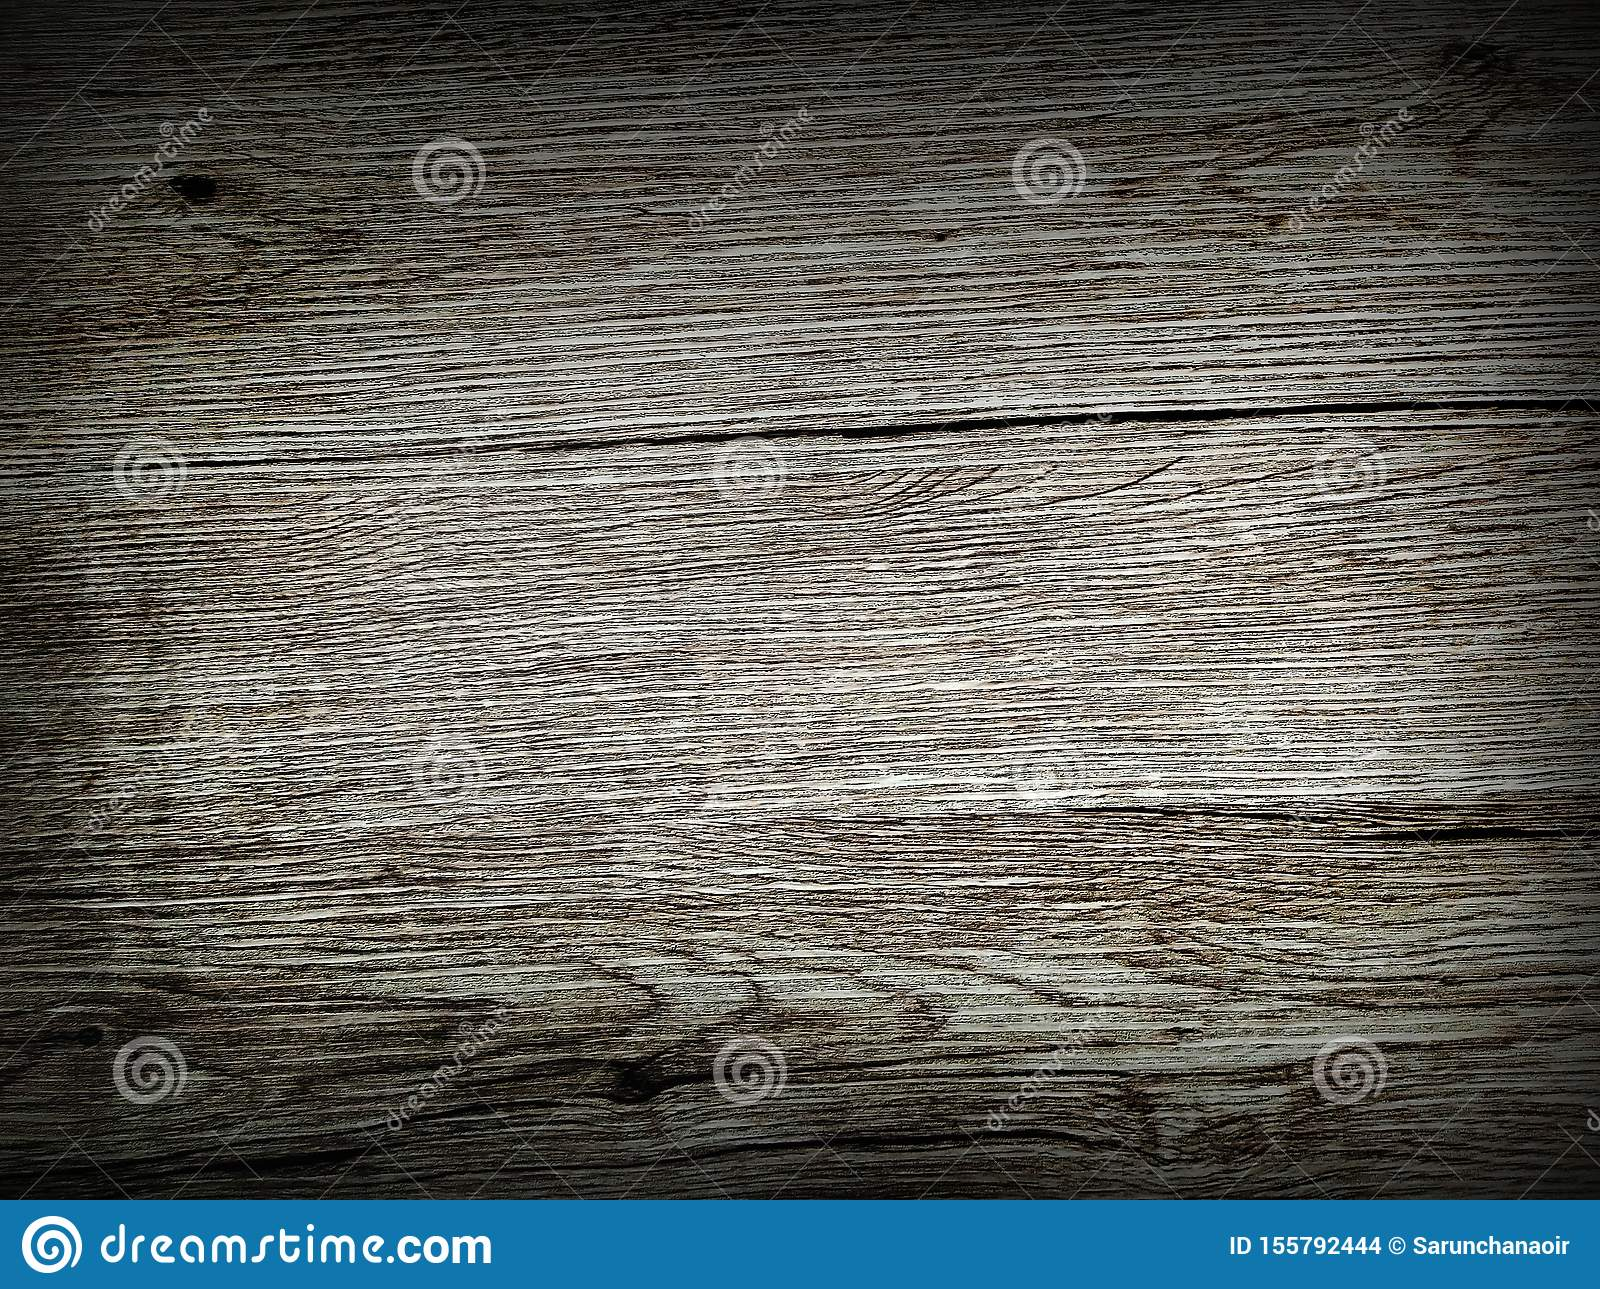 Black scratched wooden board. Wood background texture of board surface. A simple wallpaper to use in commercials